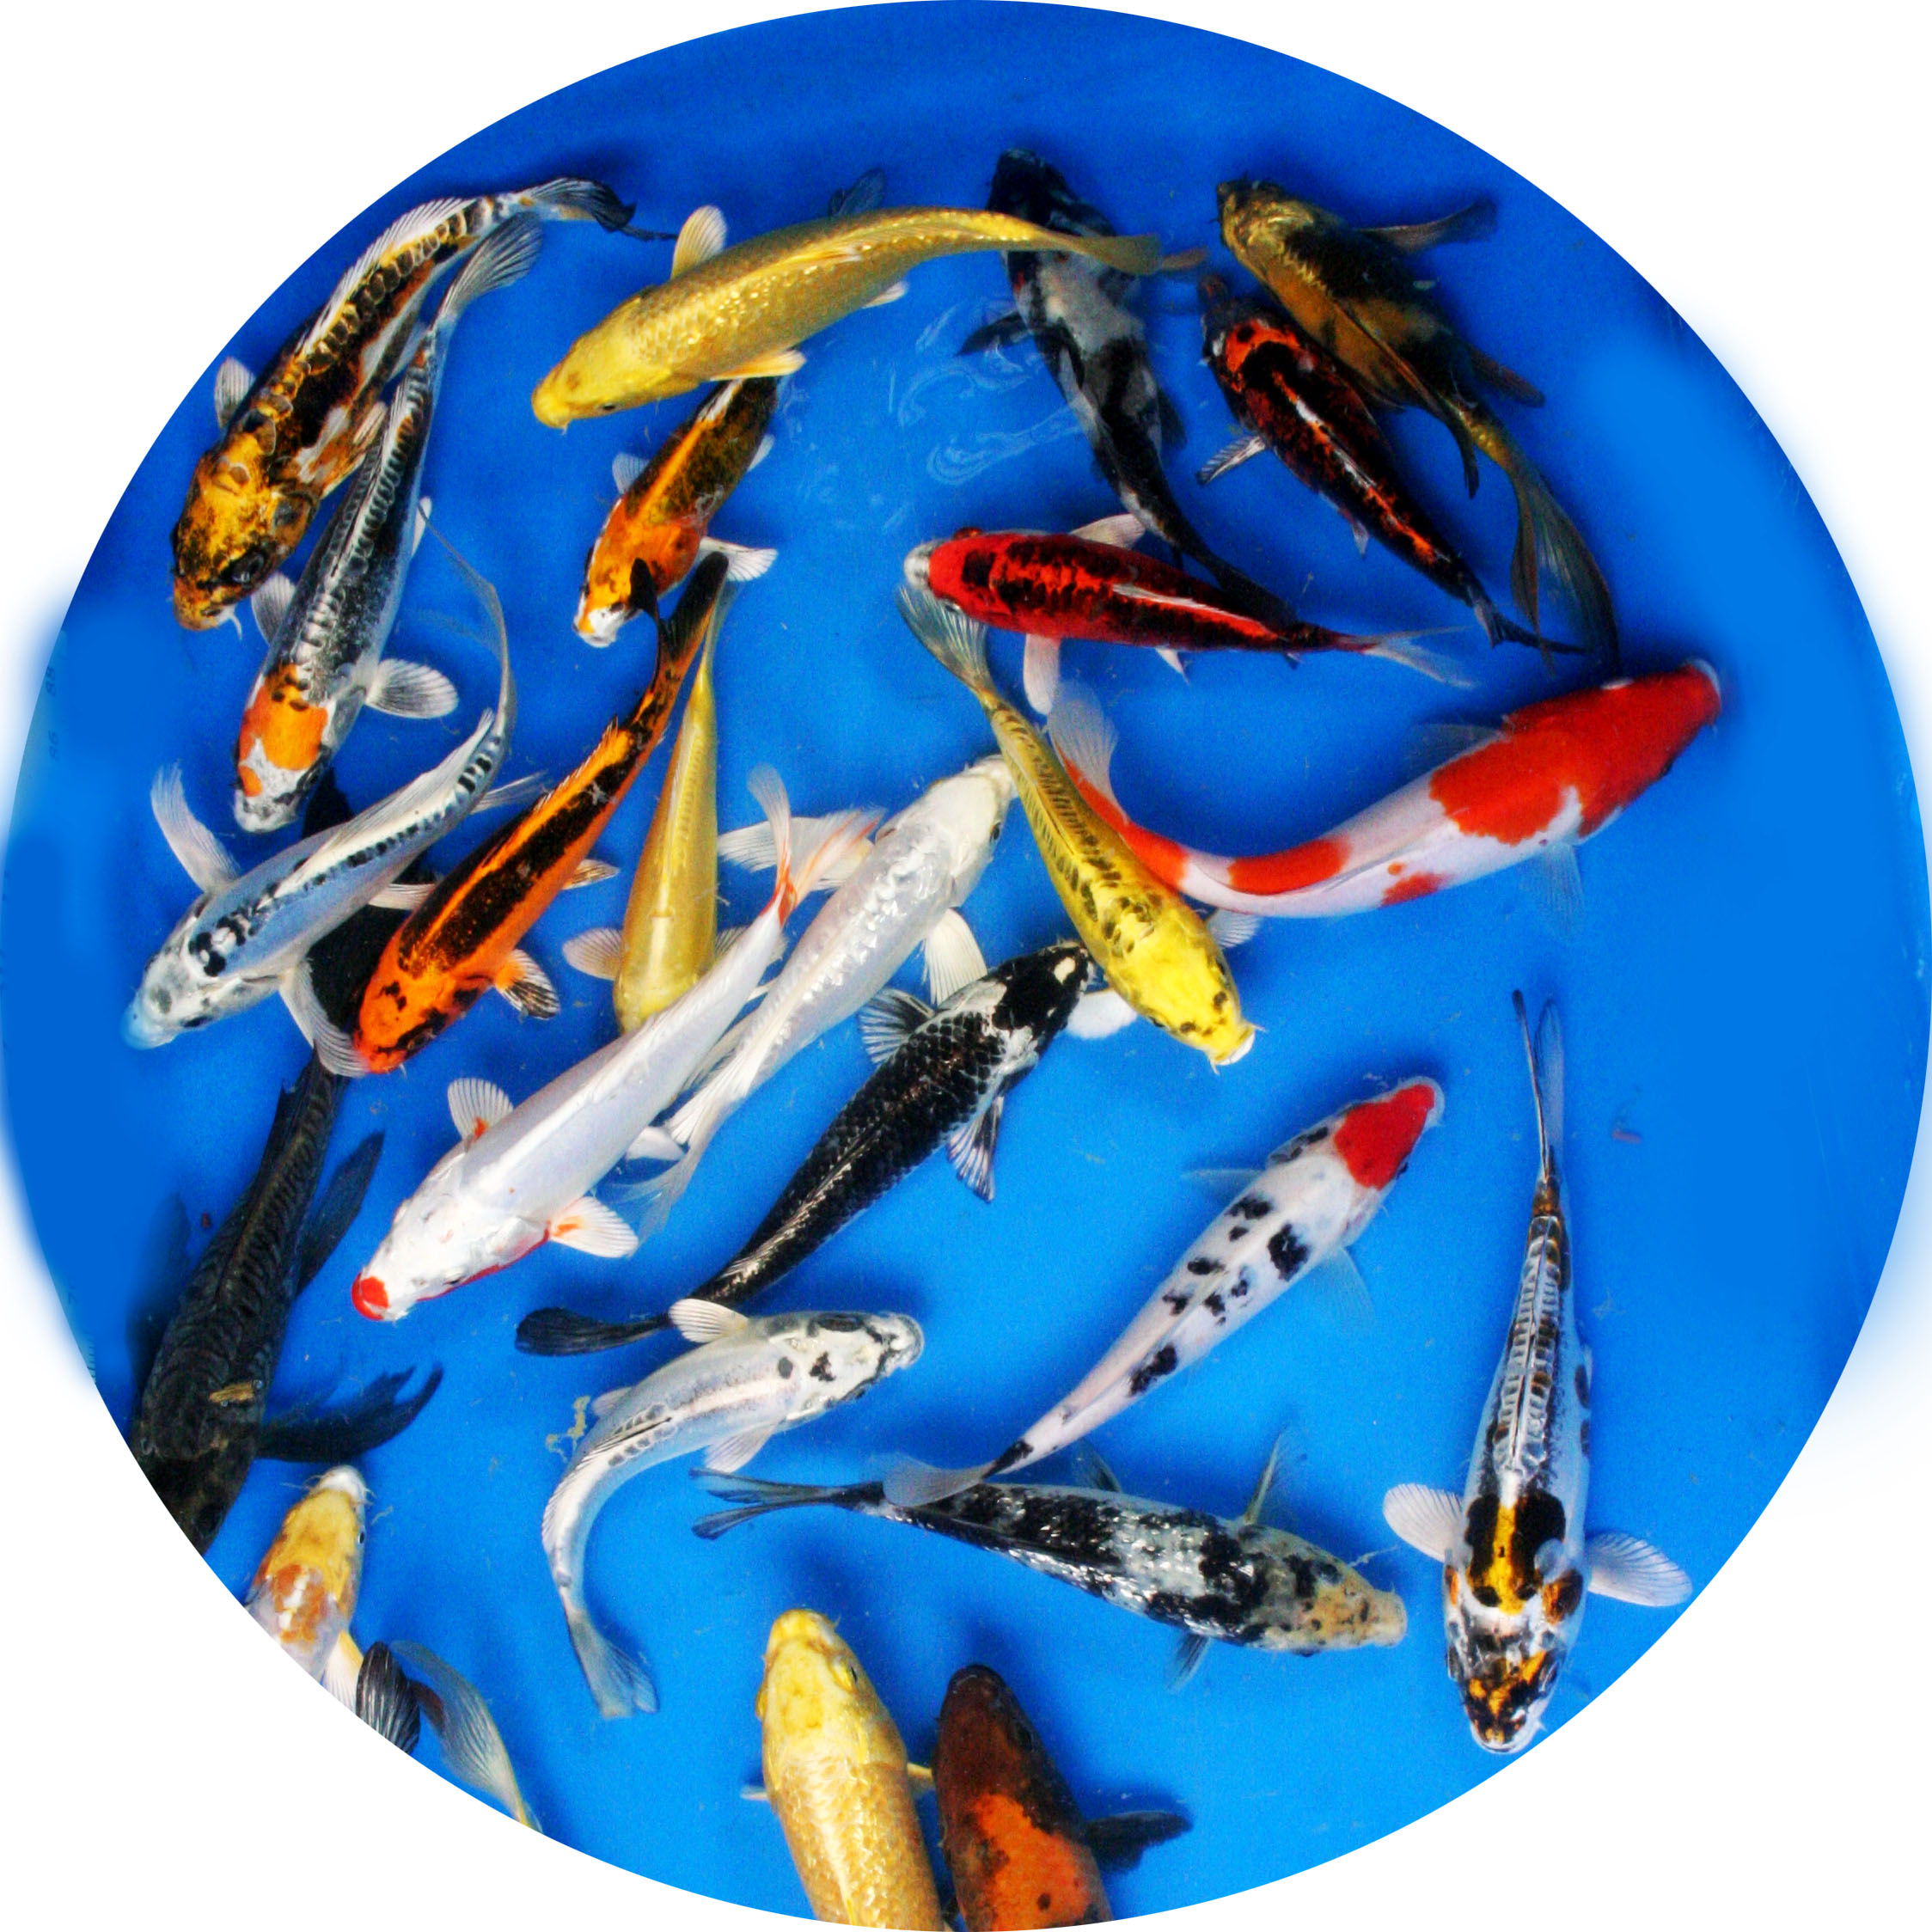 Premium grade butterfly fin variety pack 8 10 2 fish for Expensive koi fish for sale